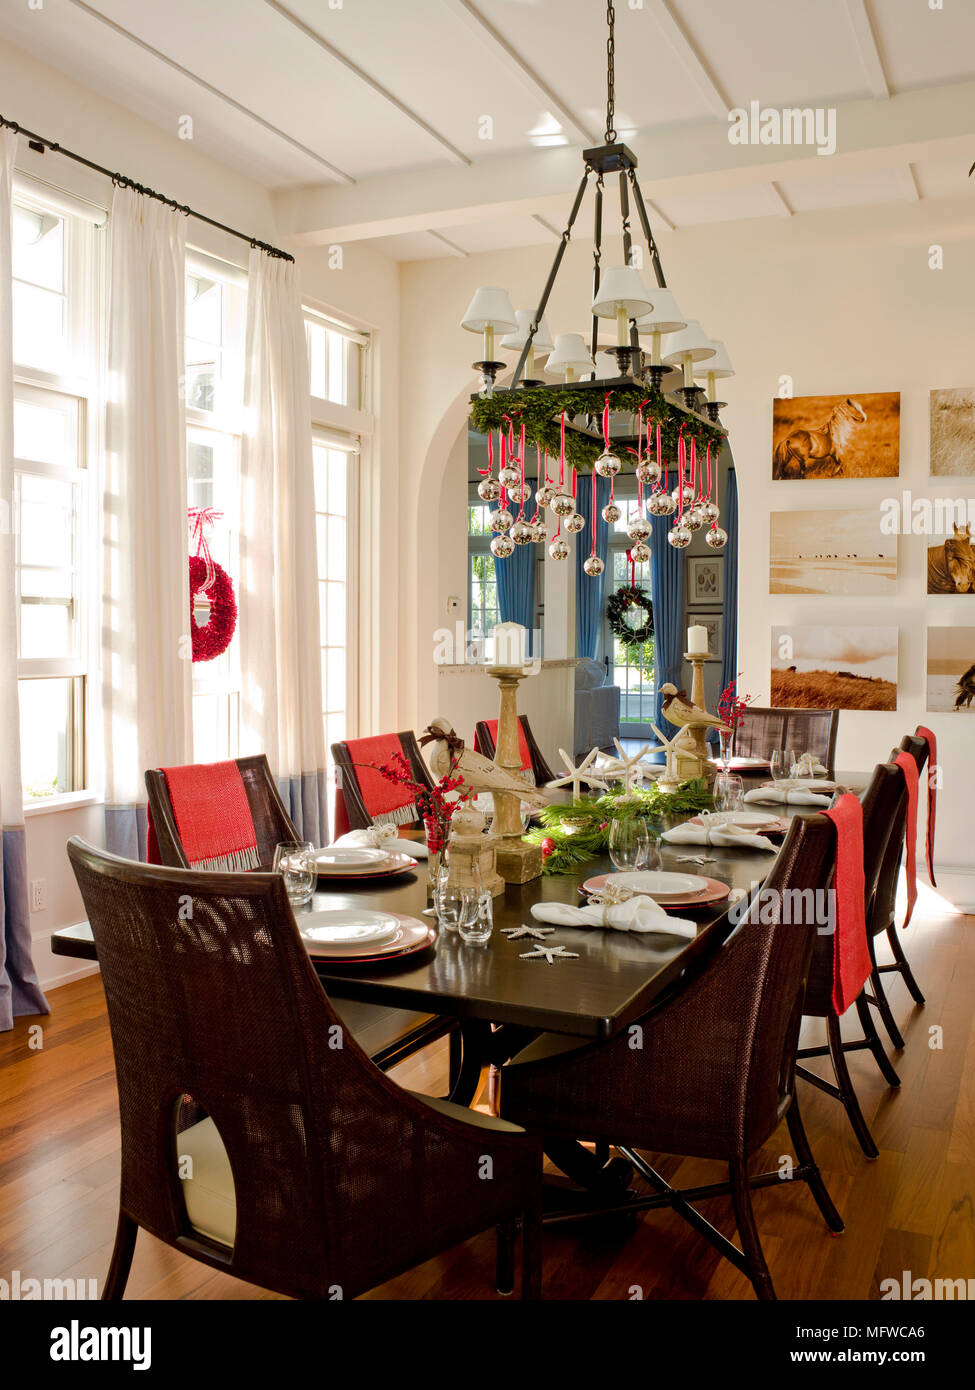 christmas decorations hanging from chandelier above table laid for lunch in country style dining room - Christmas Chandelier Decorations